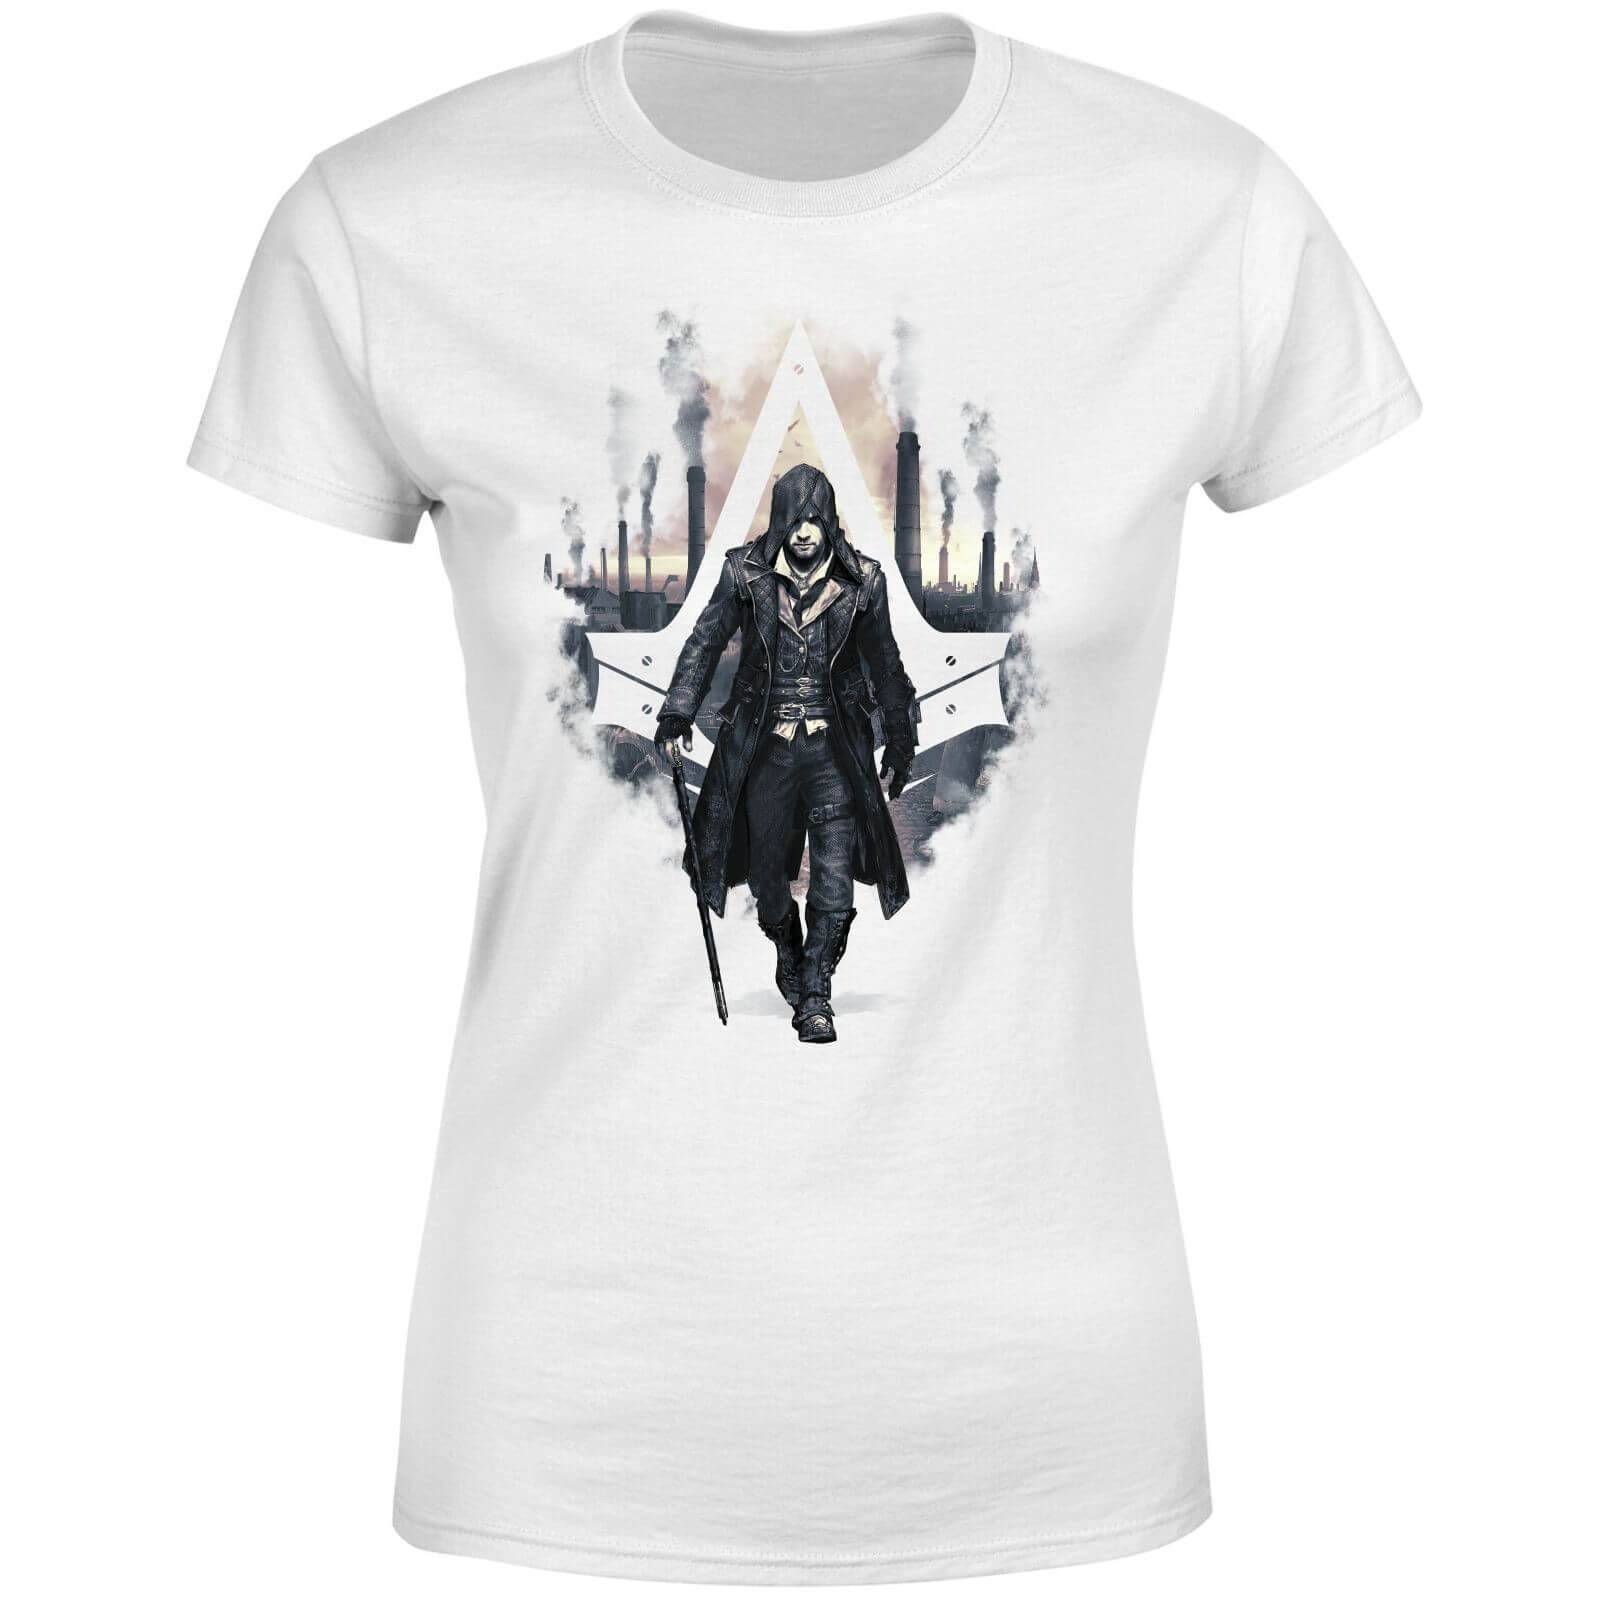 Assassin's Creed T-Shirt Femme London Skyline Assassin's Creed Syndicate - Blanc - M - Blanc